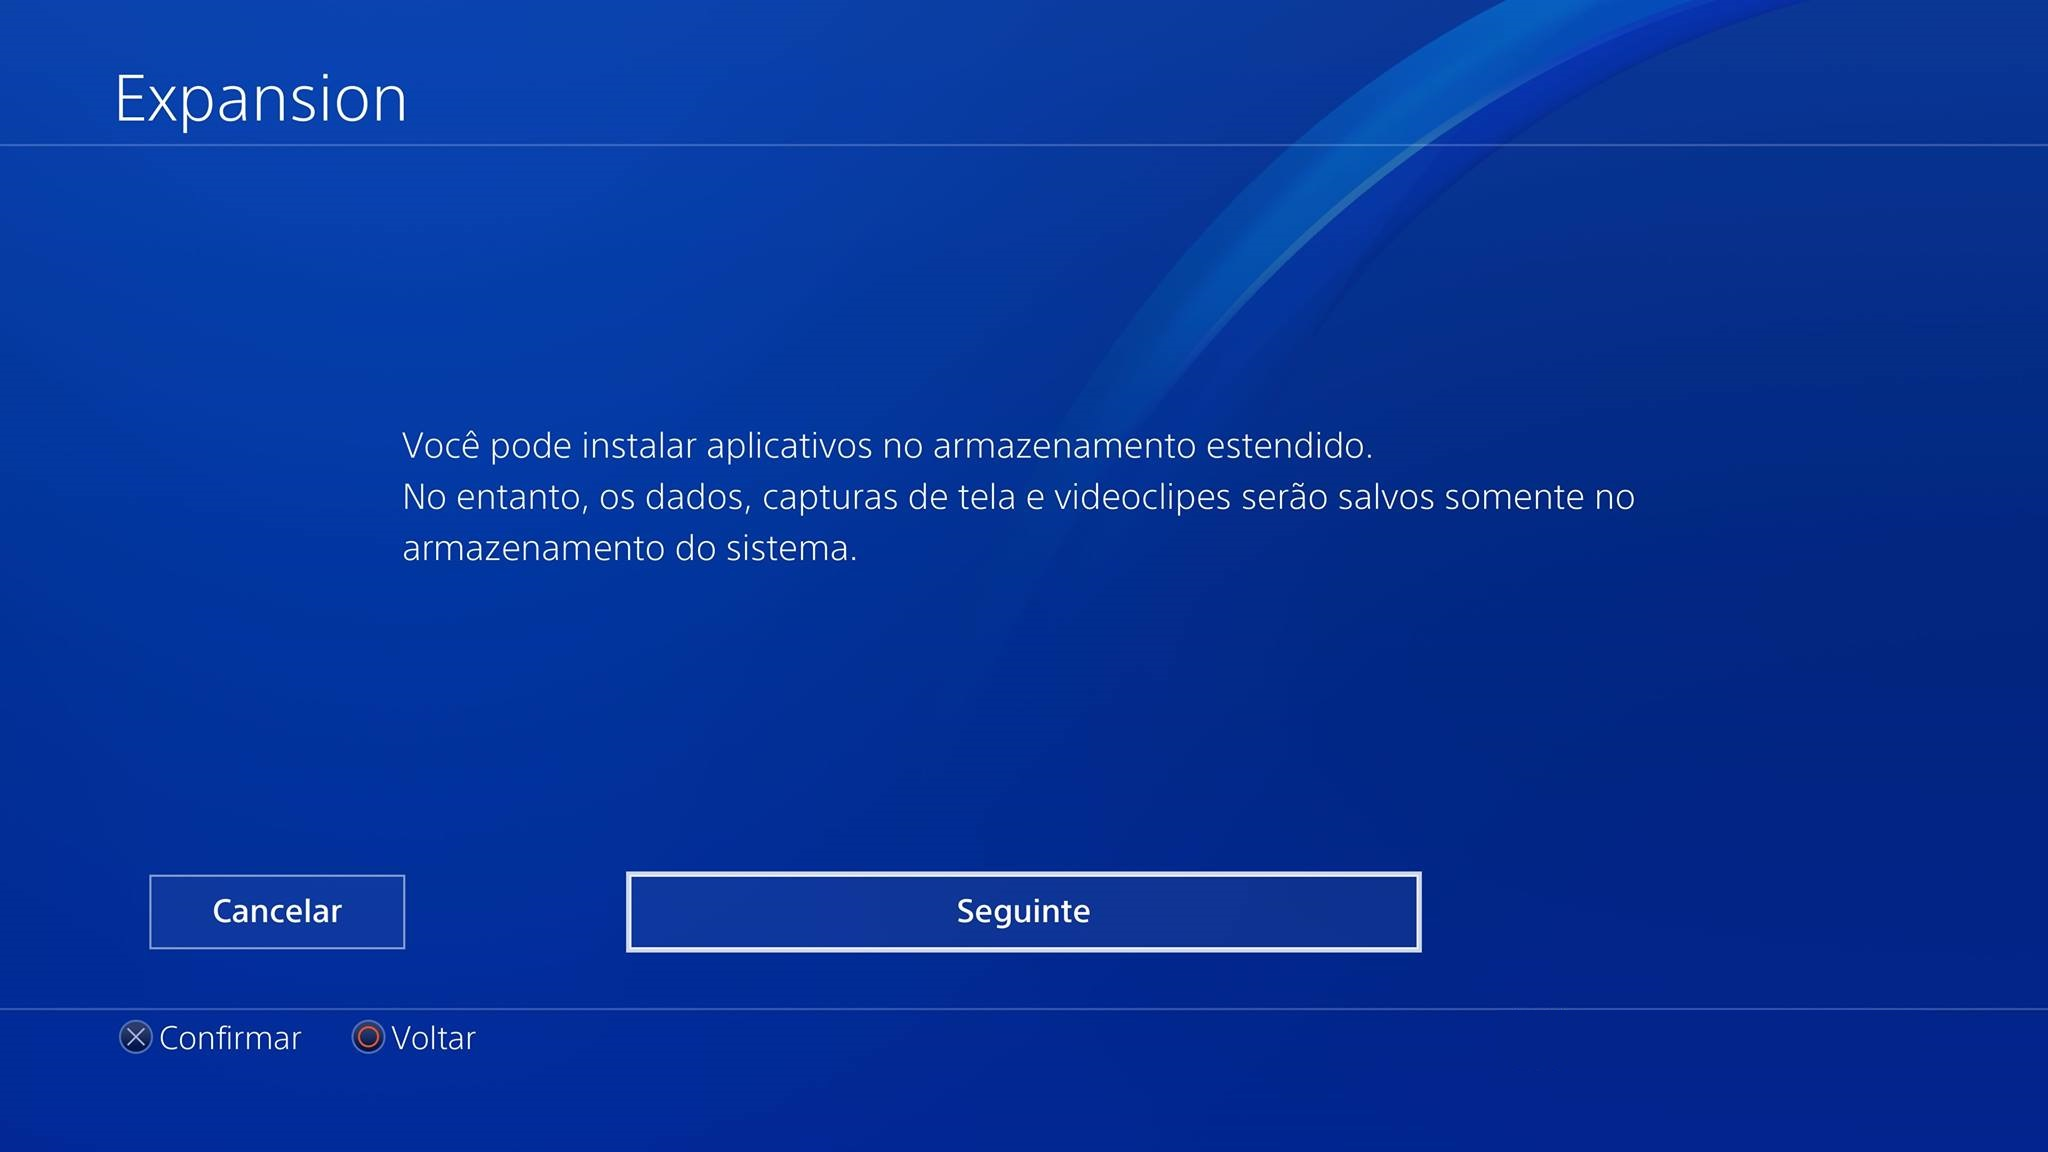 Configurando-HD-externo-no-PS4-6-1.jpg